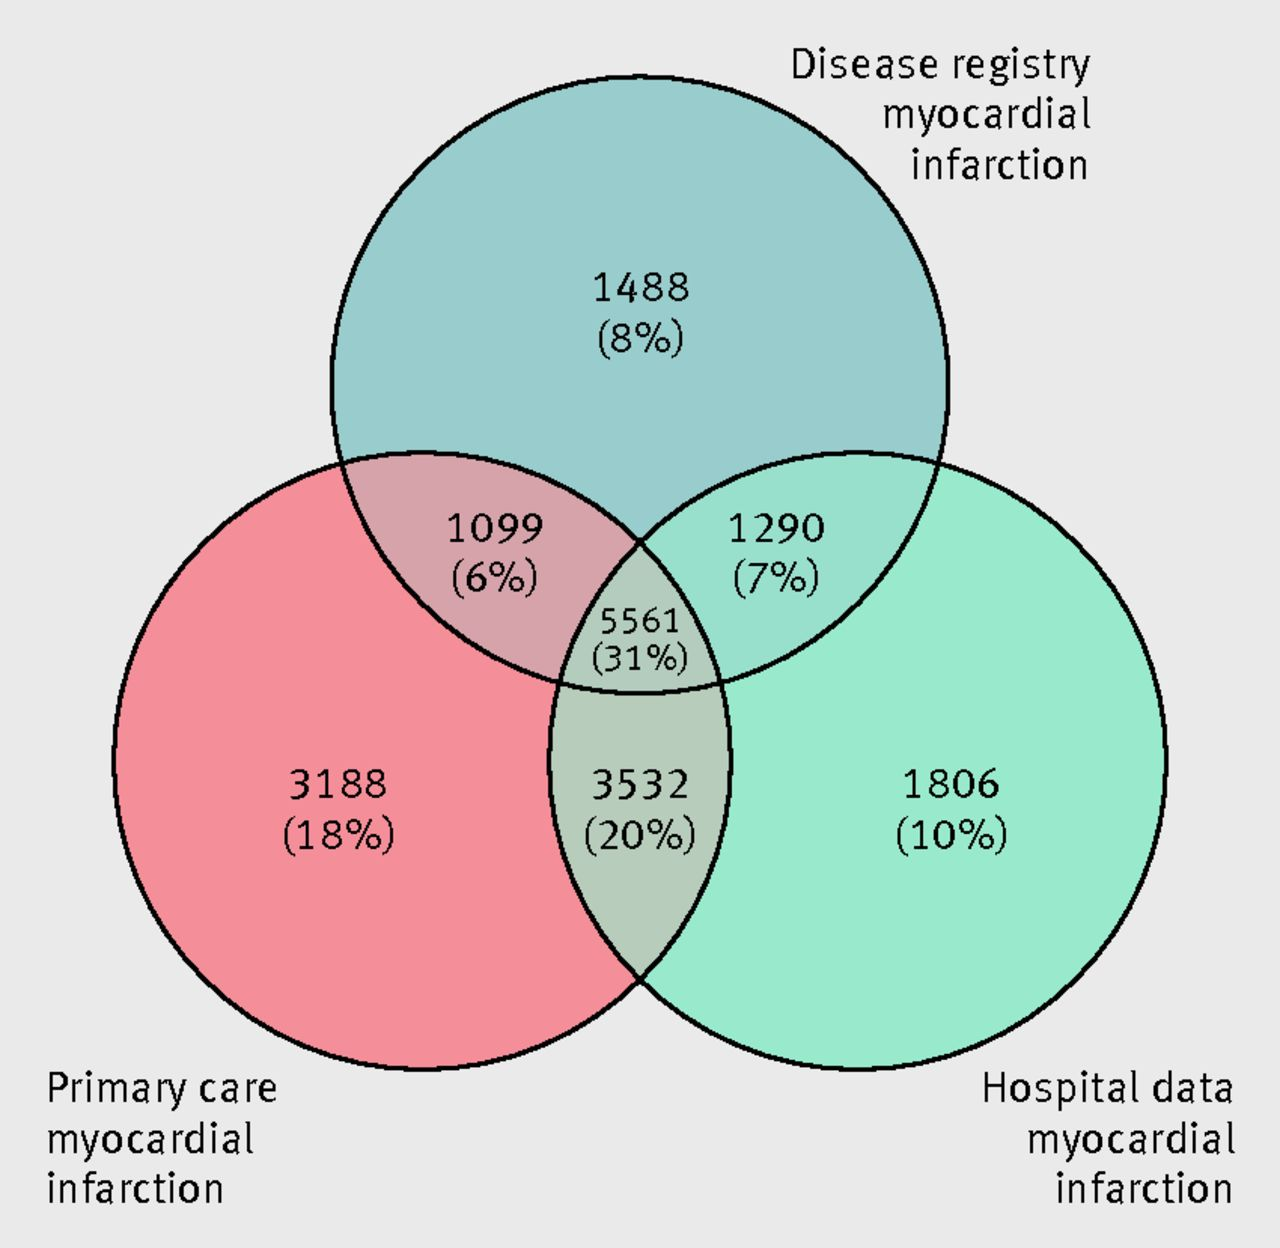 completeness and diagnostic validity of recording acute myocardial infarction events in primary